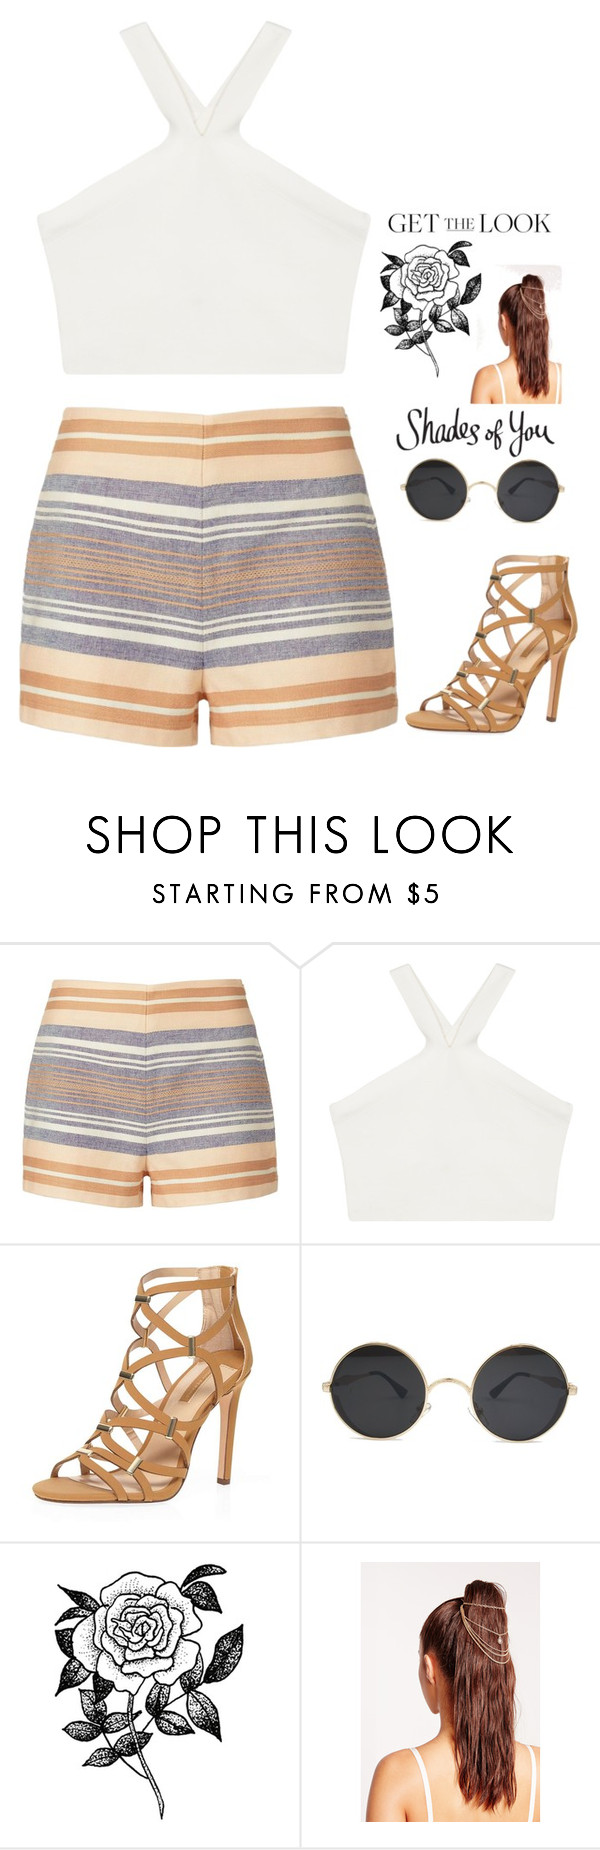 """""""Mixed up"""" by captianoats ❤ liked on Polyvore featuring Solid & Striped, BCBGMAXAZRIA, Dorothy Perkins, Forever 21 and Missguided"""